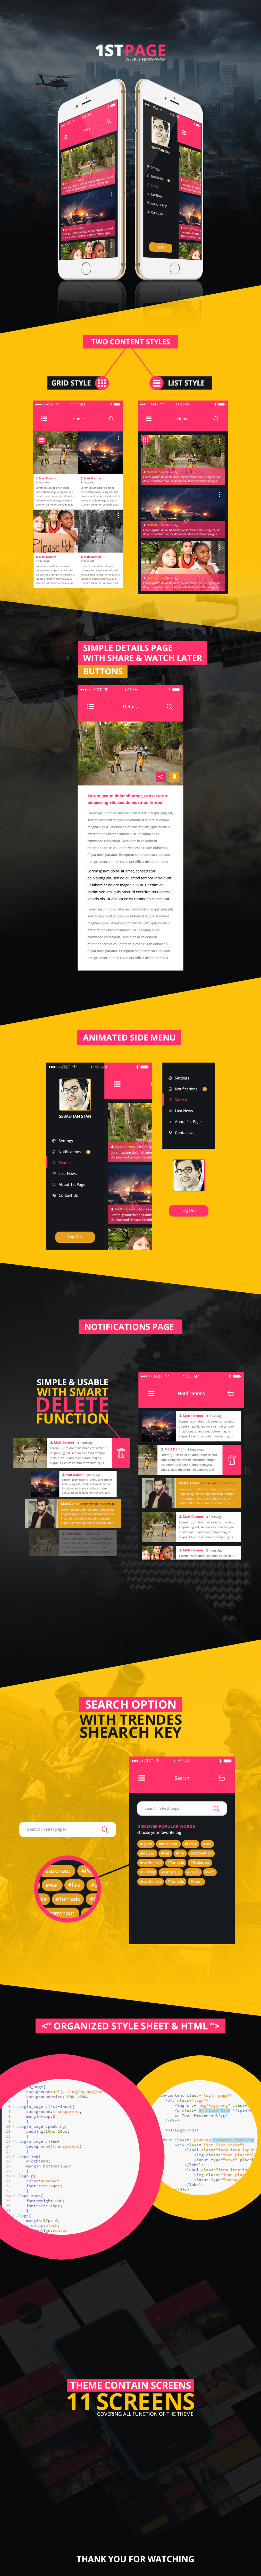 1st Page-ionic app theme